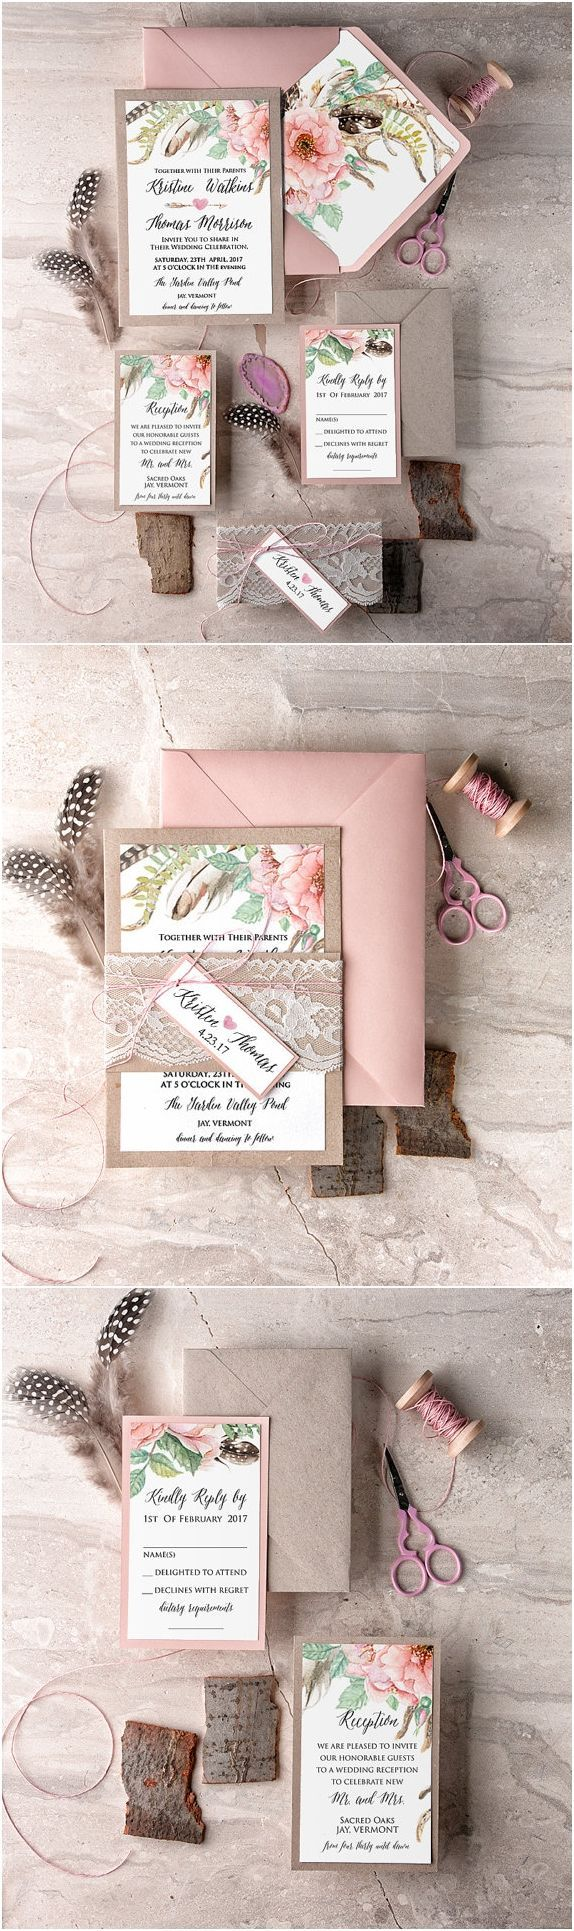 Blush Lace Wedding Invitation, Boho Wedding Invitations, Romantic Wedding Invites, Wedding Invitation Suite